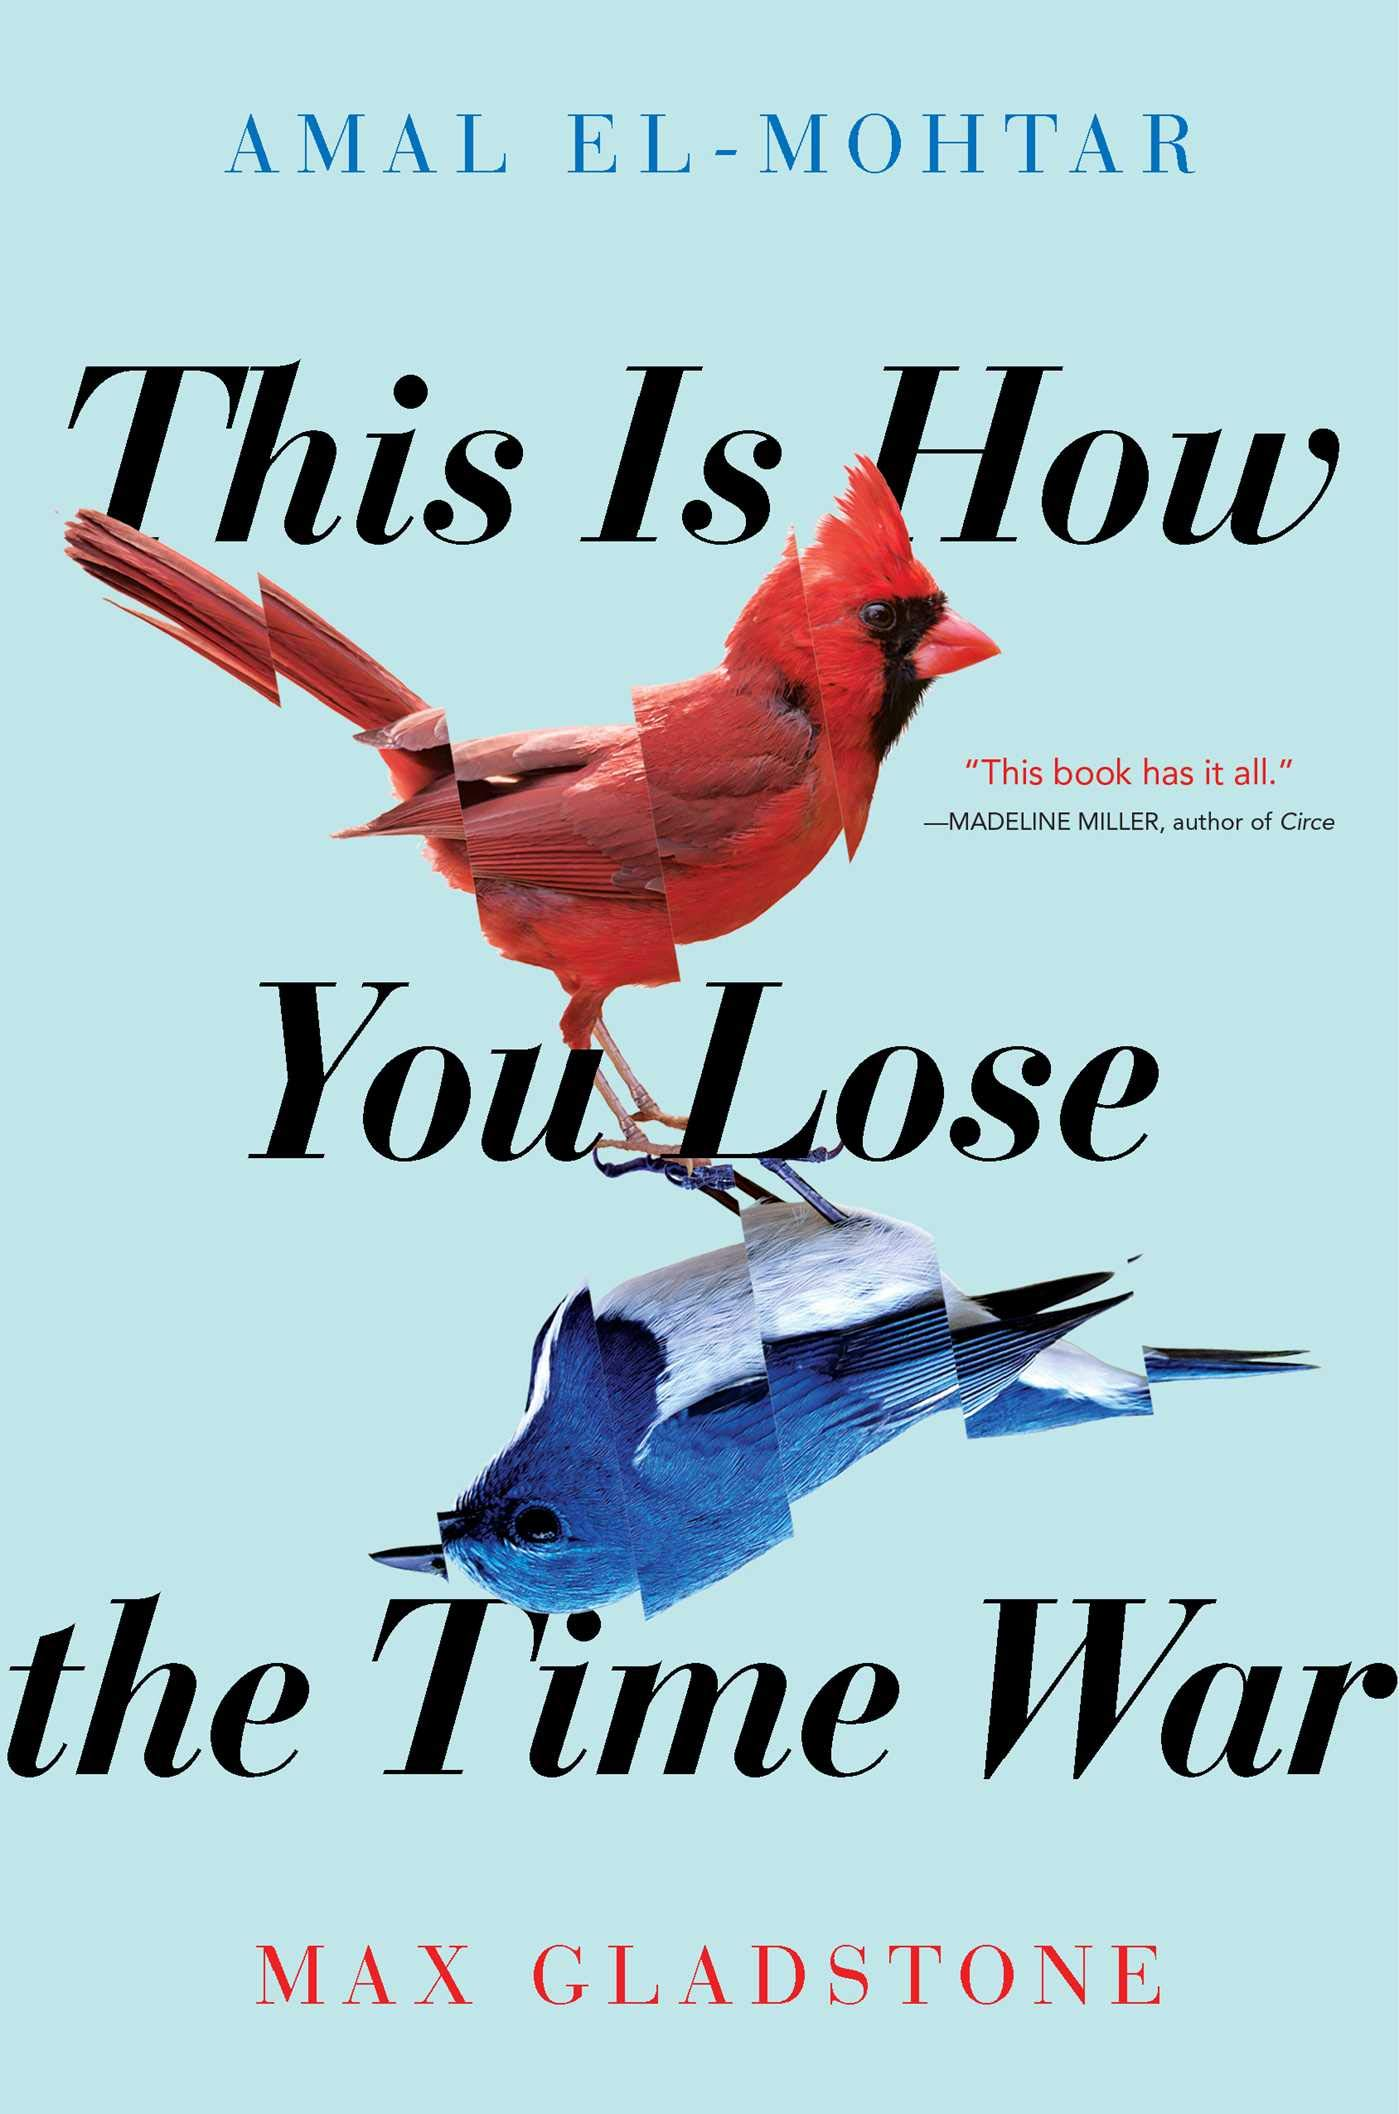 Amazon.com: This Is How You Lose the Time War (9781534431003): El-Mohtar,  Amal, Gladstone, Max: Books